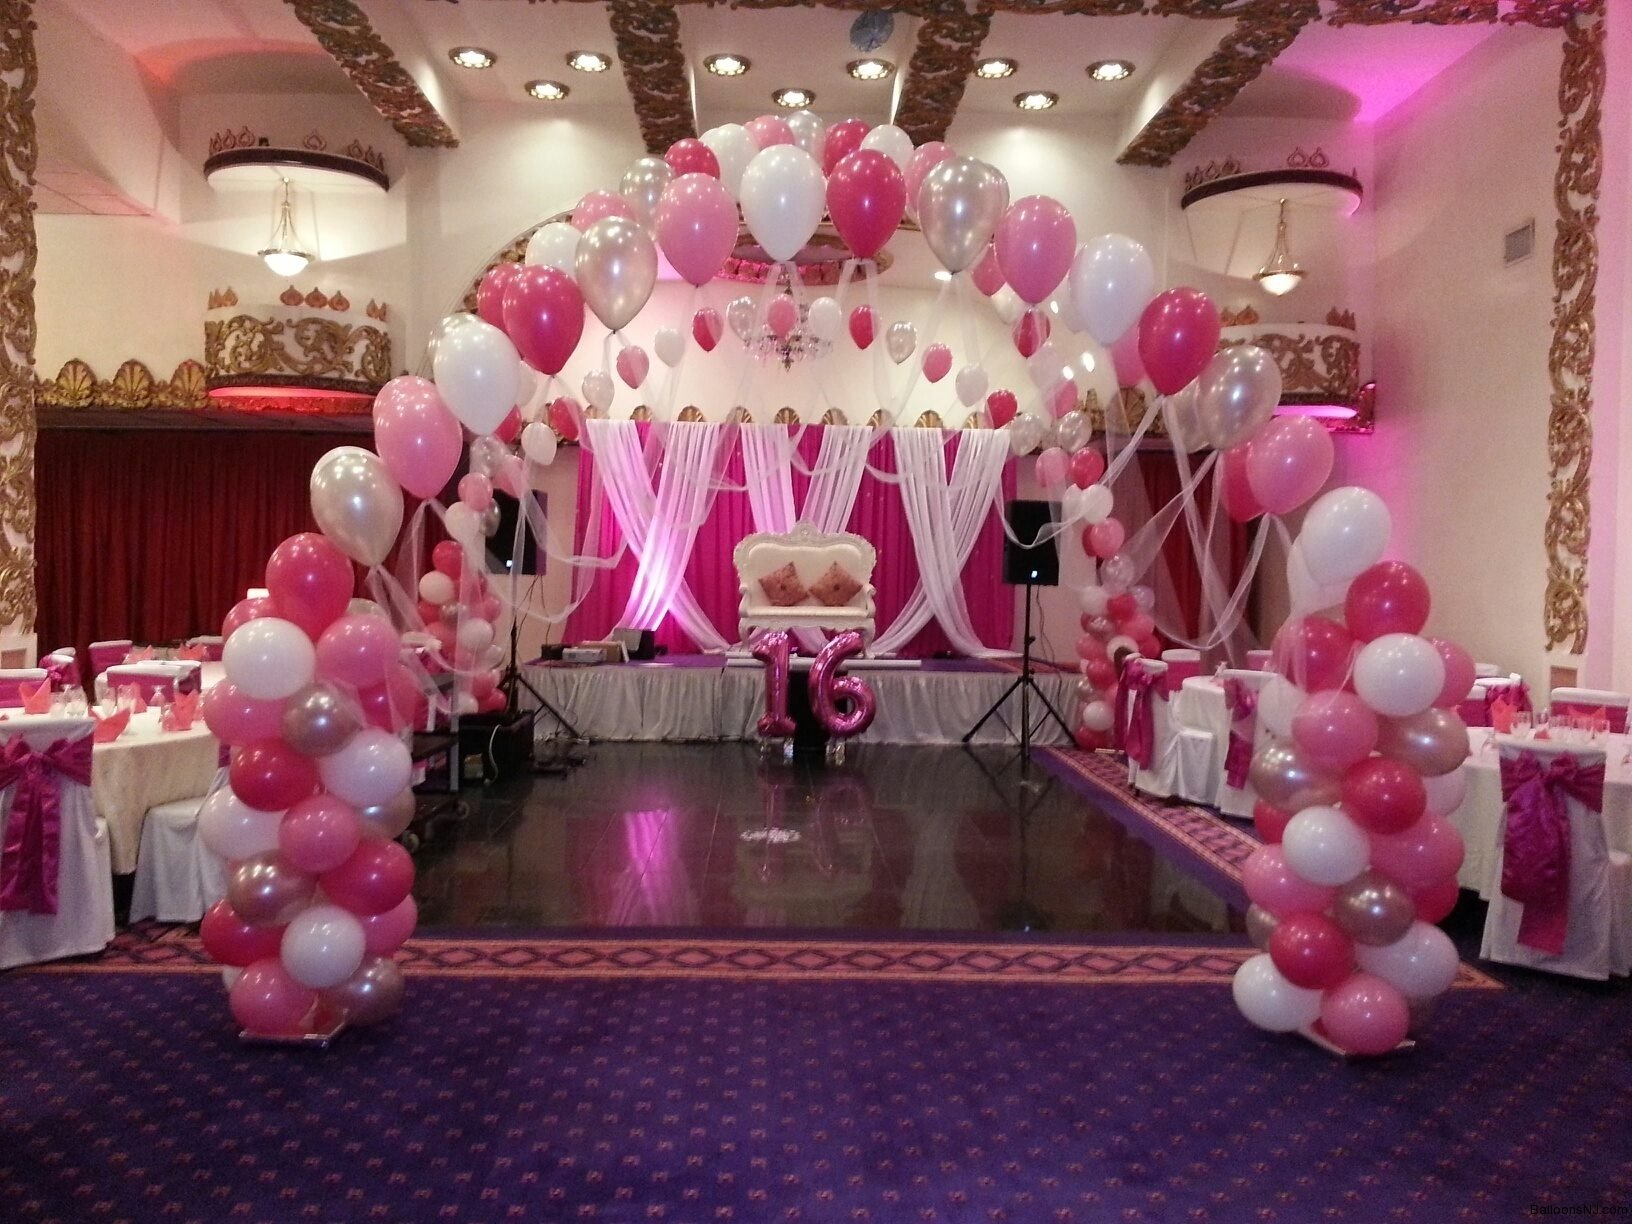 10 Nice 16 Year Old Birthday Party Ideas sweet sixteen decorations and also return gift ideas for sweet 16 5